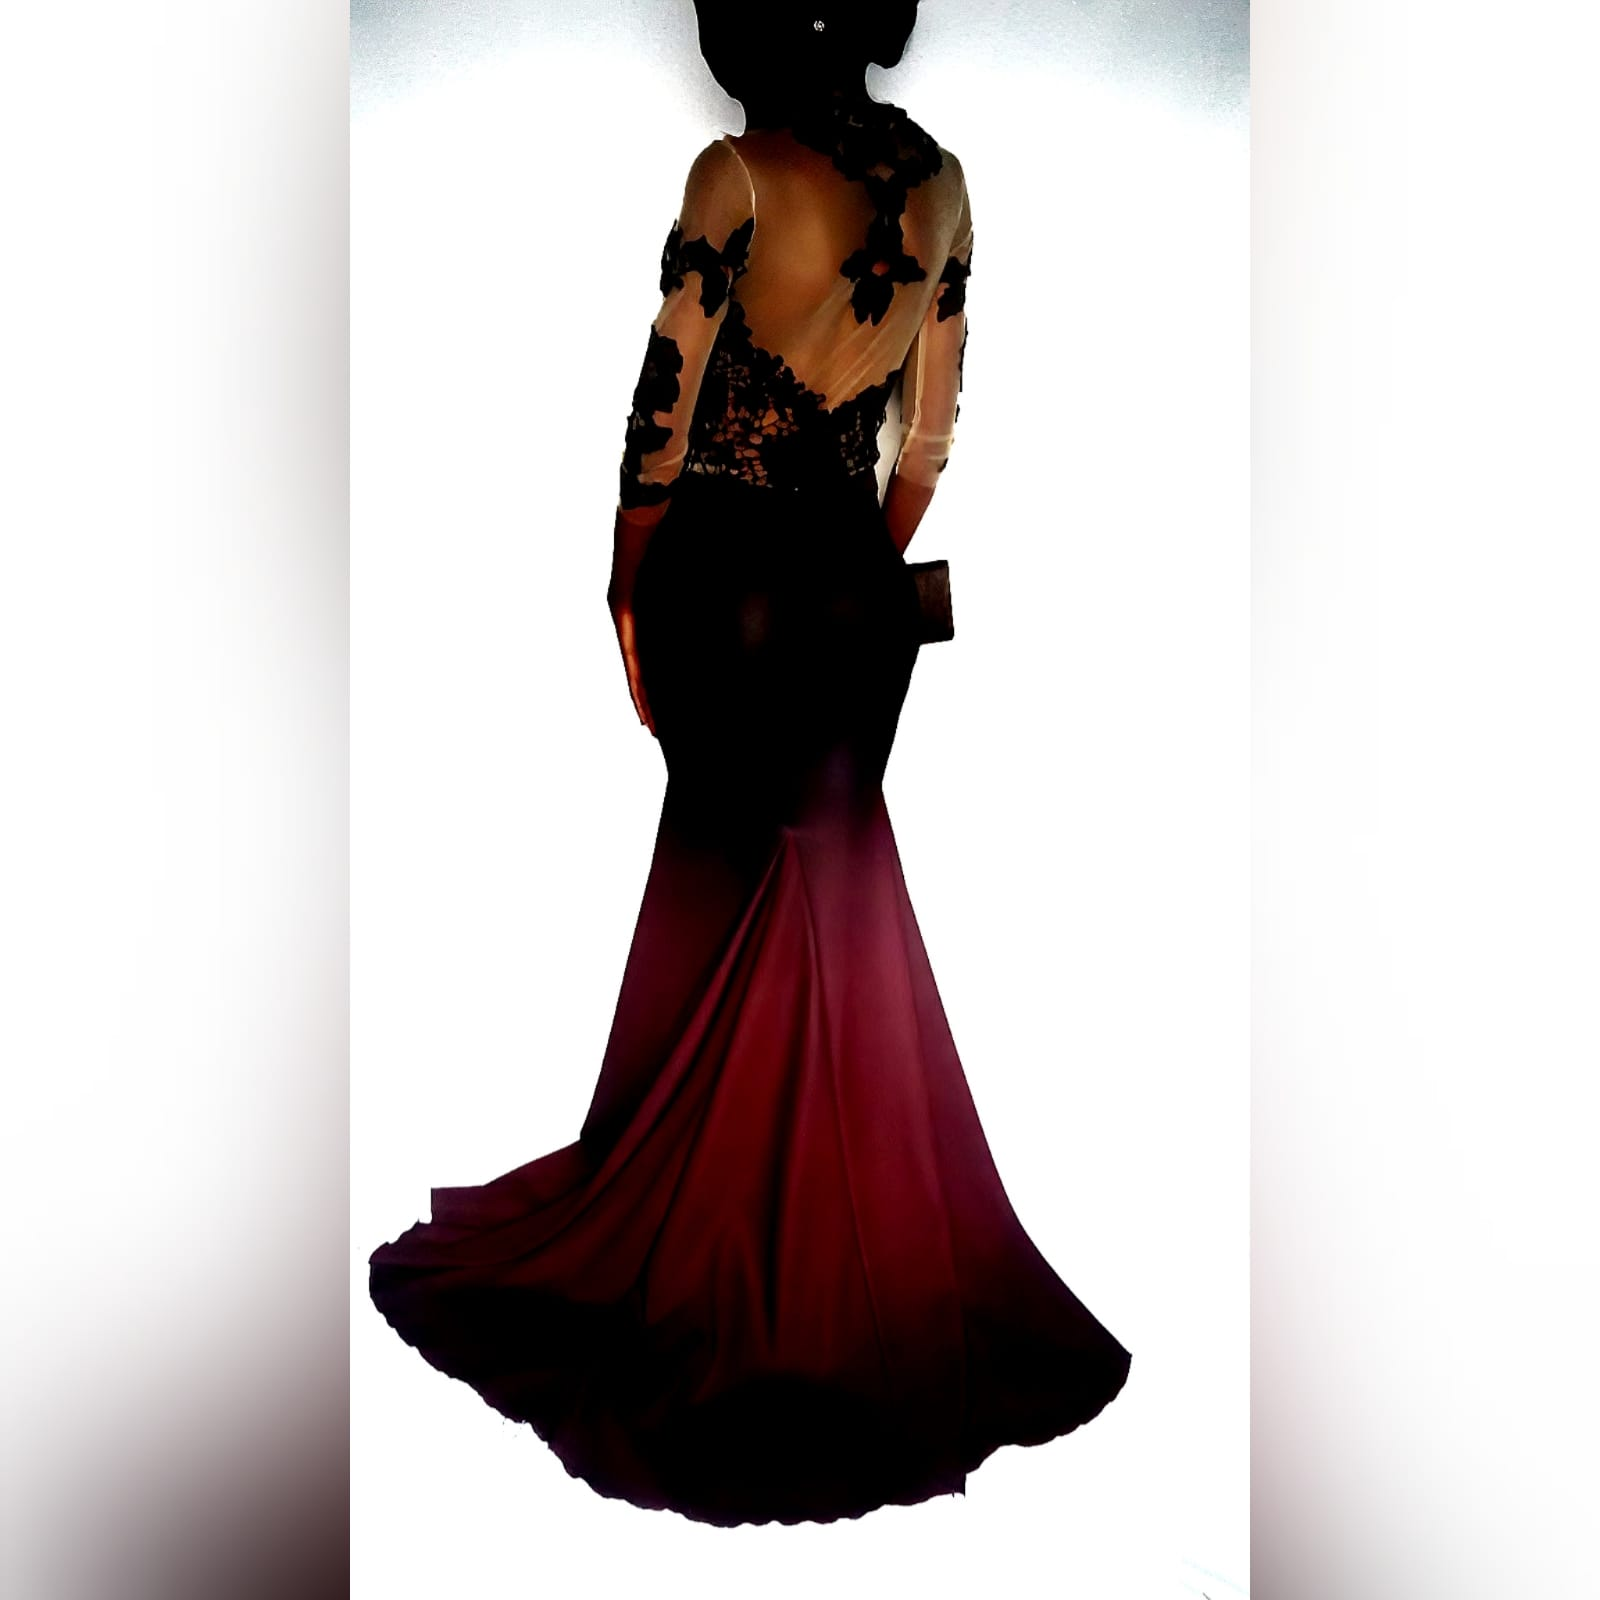 "Unique elegant mermaid evening dress 3 <blockquote>""oh, never mind the fashion. When one has a style of one's own, it is always twenty times better"", margaret oliphant</blockquote>a personalized prom dress created to suit my clients needs. This unique elegant mermaid evening dress has a 2 tone ombre of burgundy fading into black. With a black lace illusion bodice and 3/4 sleeves#mariselaveludo #passion4fashion #fashiondesigner #fashion #custommadedress #promdress #burgundyandblackdress #mermaiddress #galadress #eveningdress #customhighfashion #ombredress"